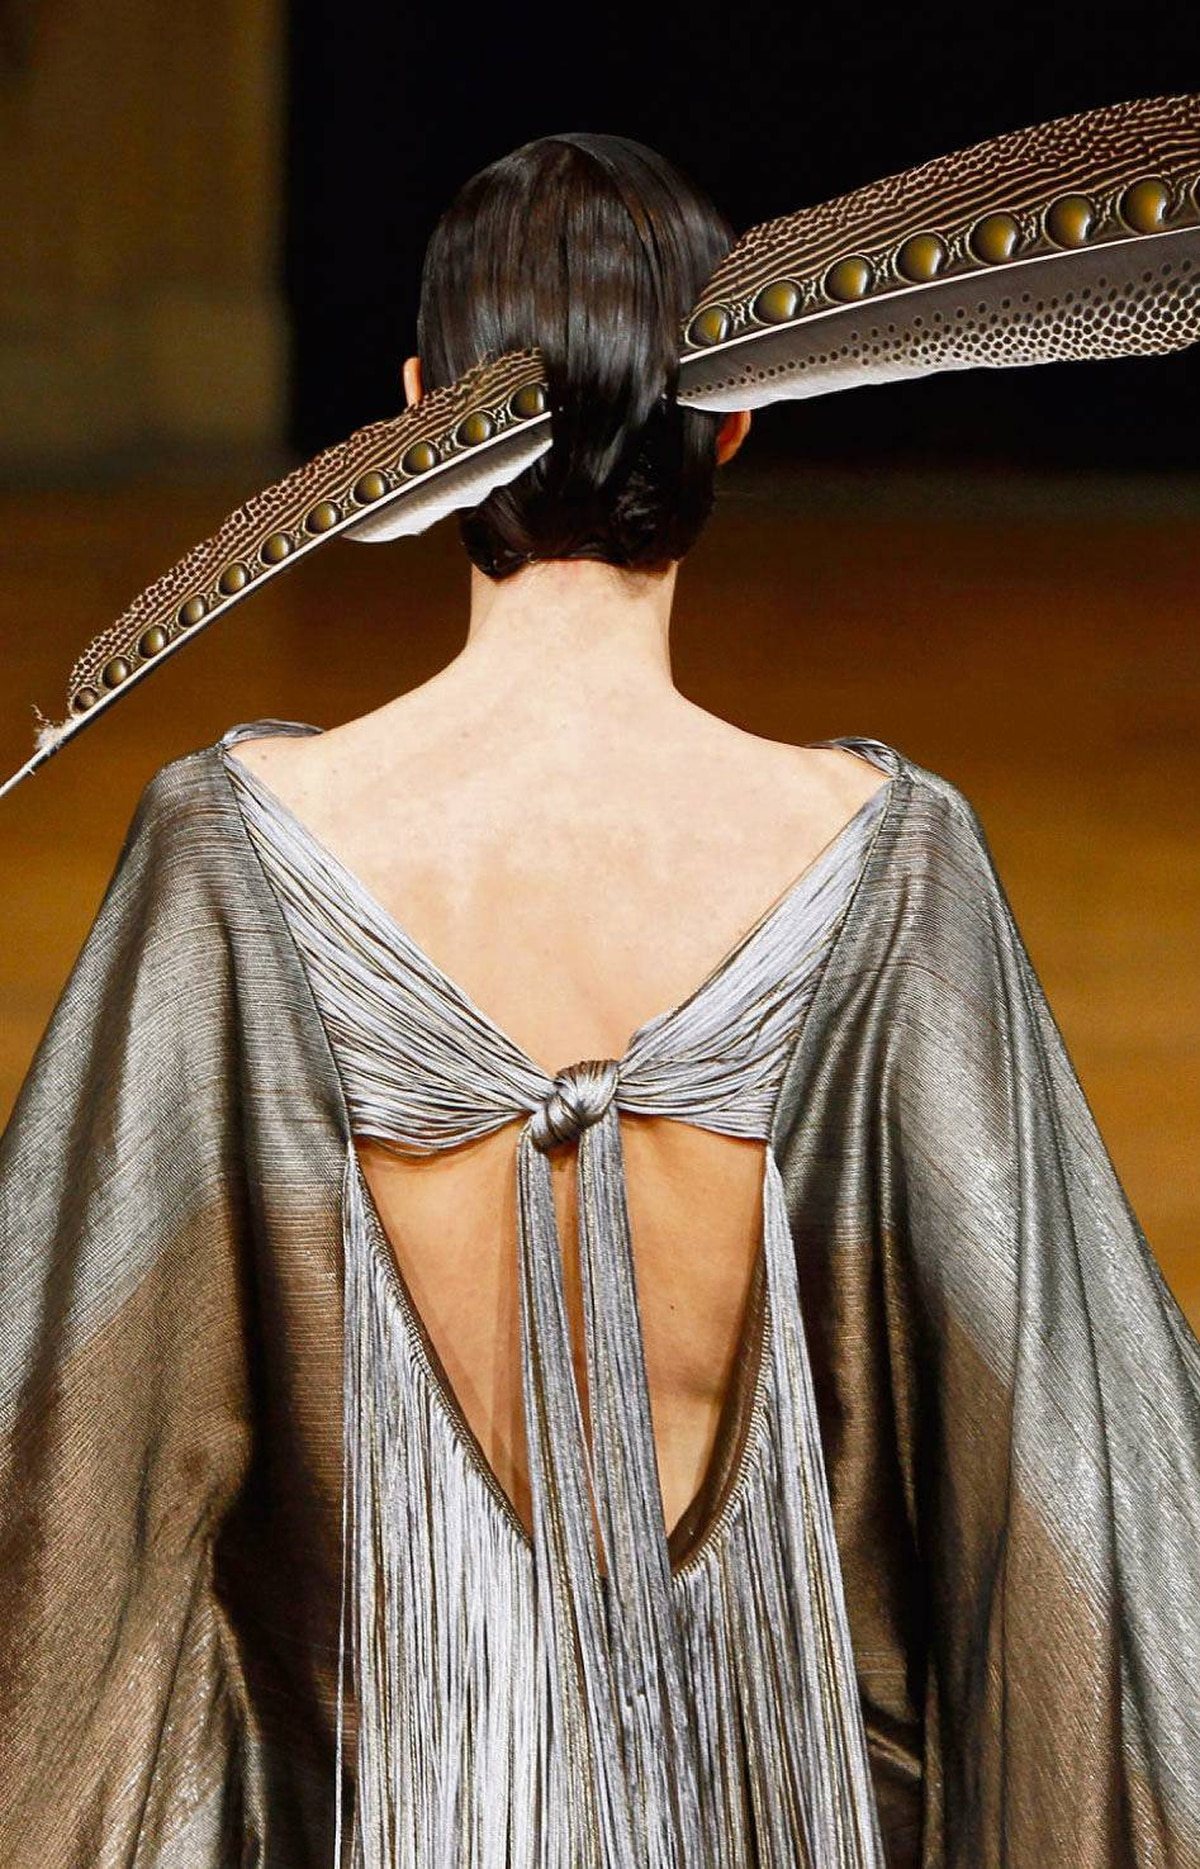 Plumage from the Alexis Mabille 2011/12 fall couture collection.